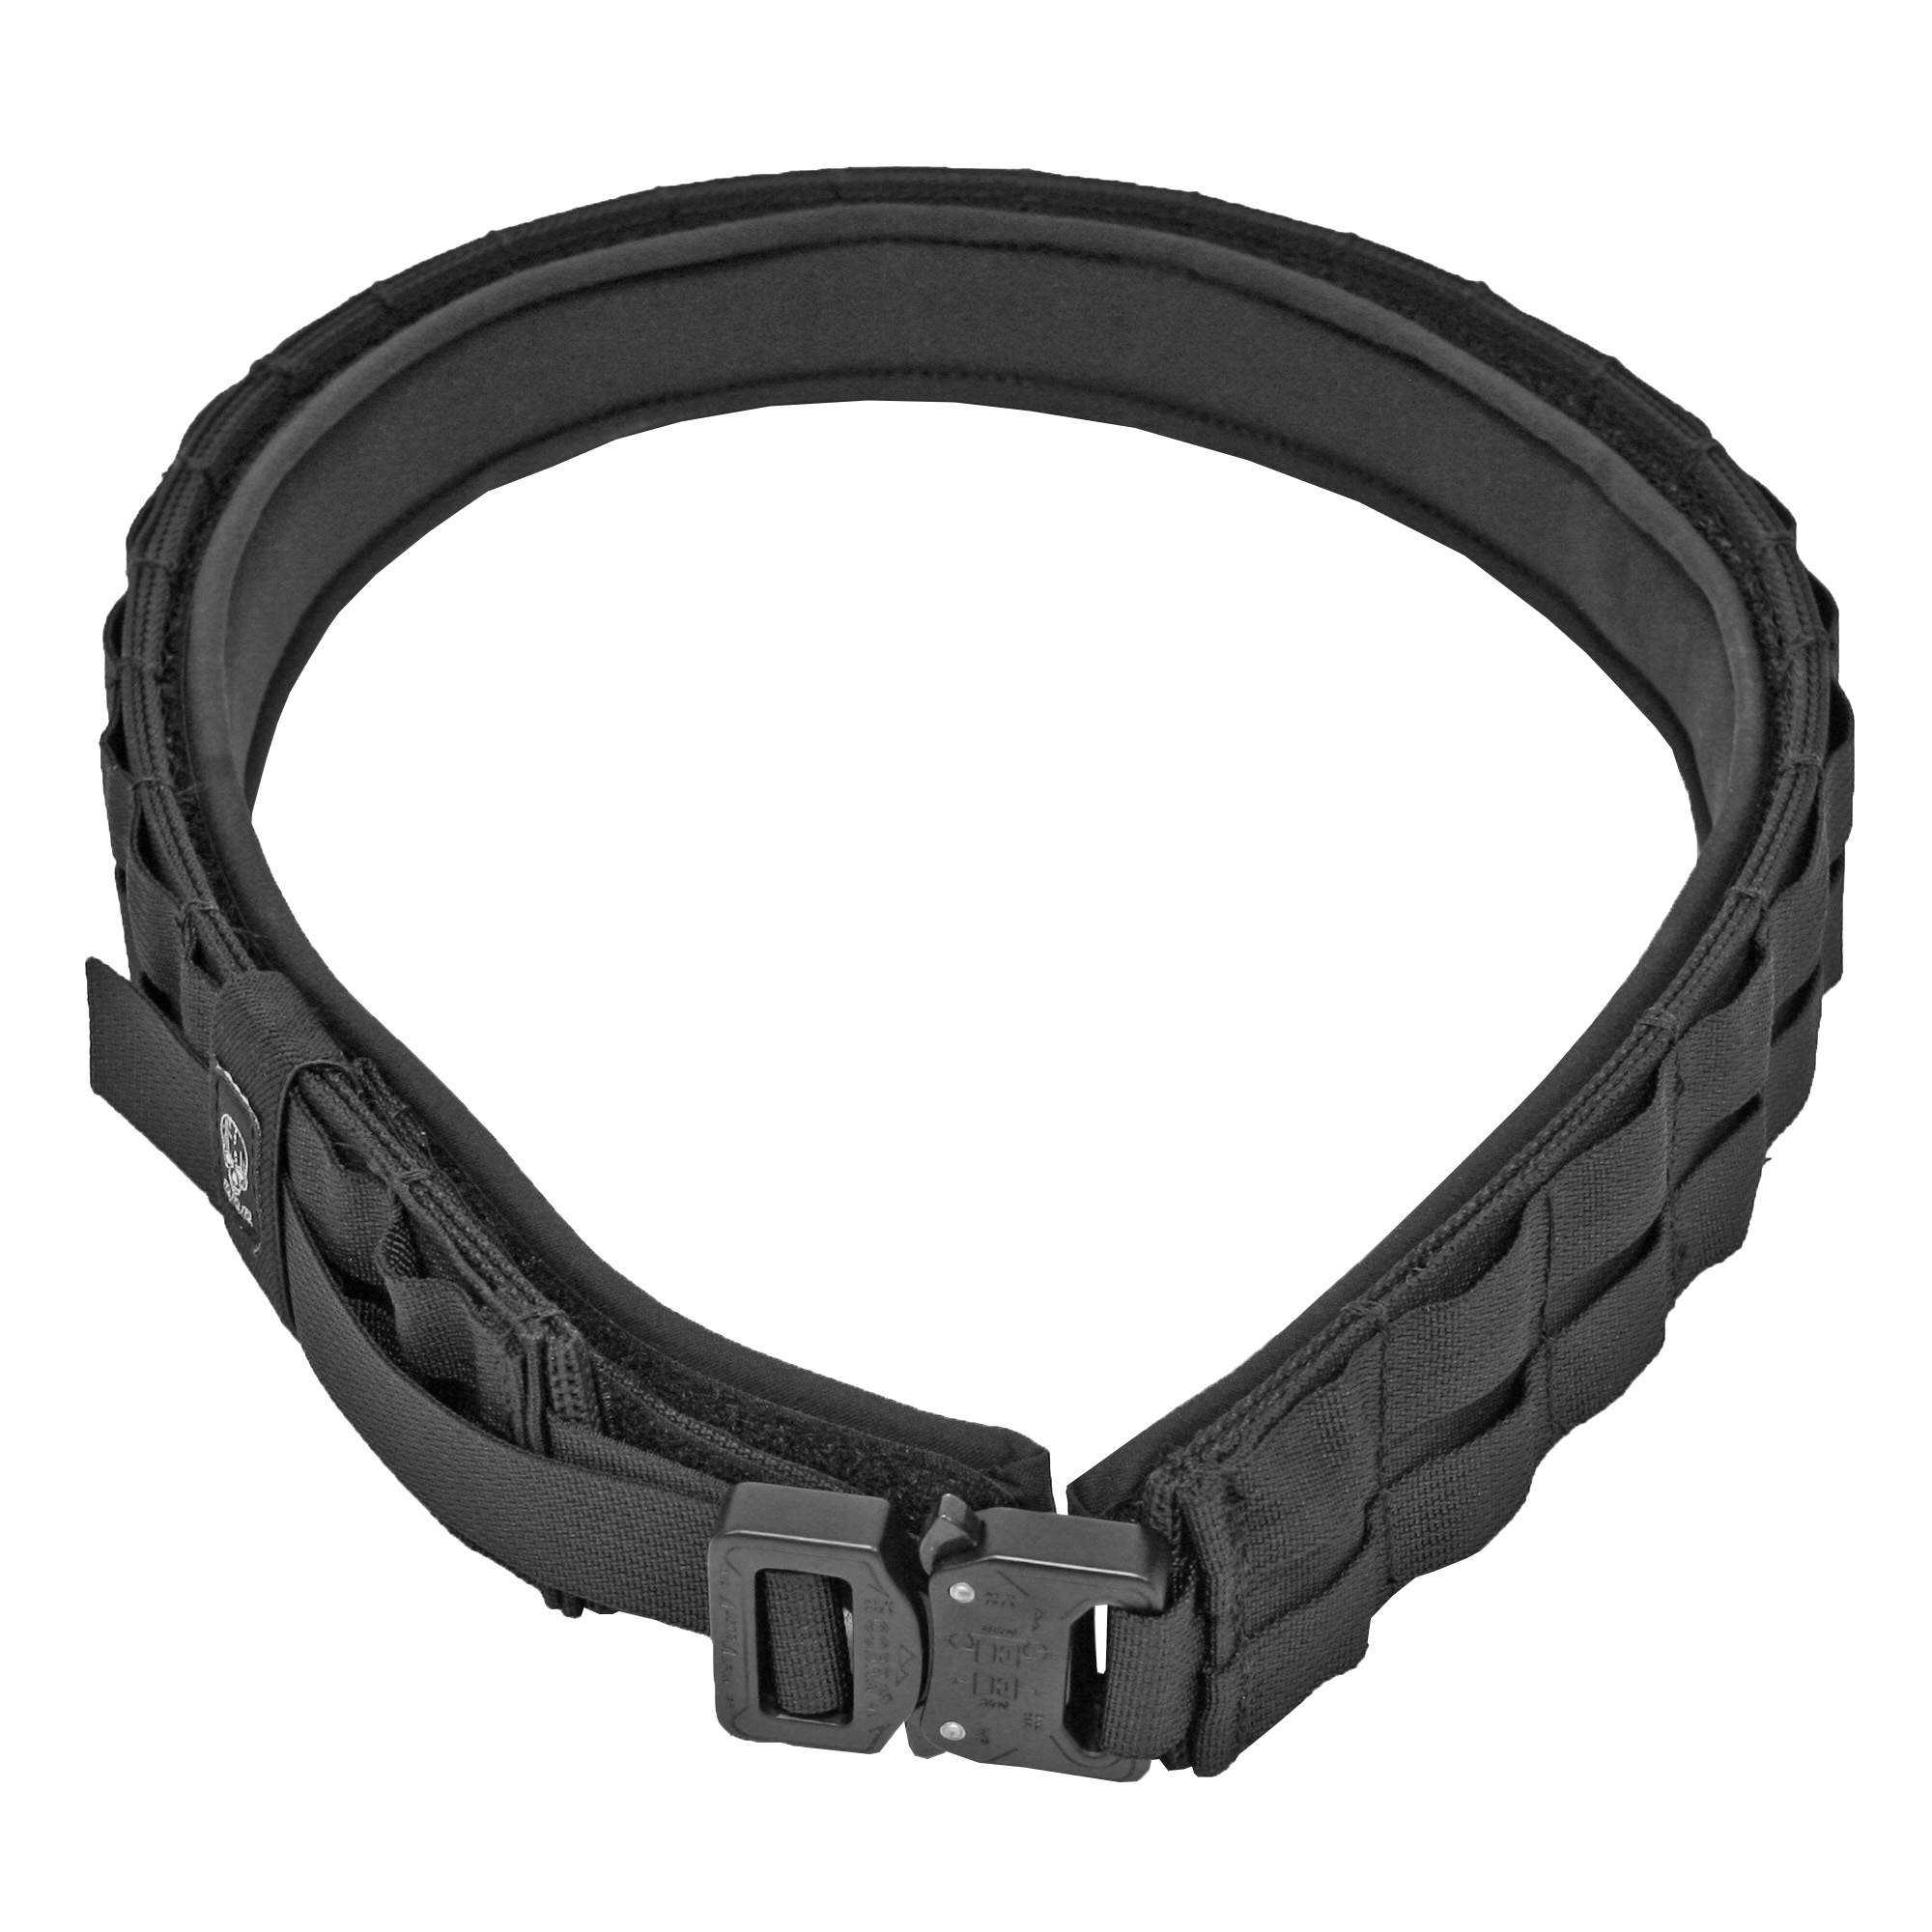 """The """"UGF"""" Belt is a light weight two piece platform. Specifically designed with the shooter in mind. Gone are the days of cumbersome oversized """"Battle Belts"""" and wearing multiple belts to the range. This """"inner/outer"""" belt system features a padded comfortable 1.5 inch inner belt and a 2 inch outer belt with multiple attachment points making it fully customizable. The sturdy hook and loop strips keep your tools of the trade secure and right where they need to be."""